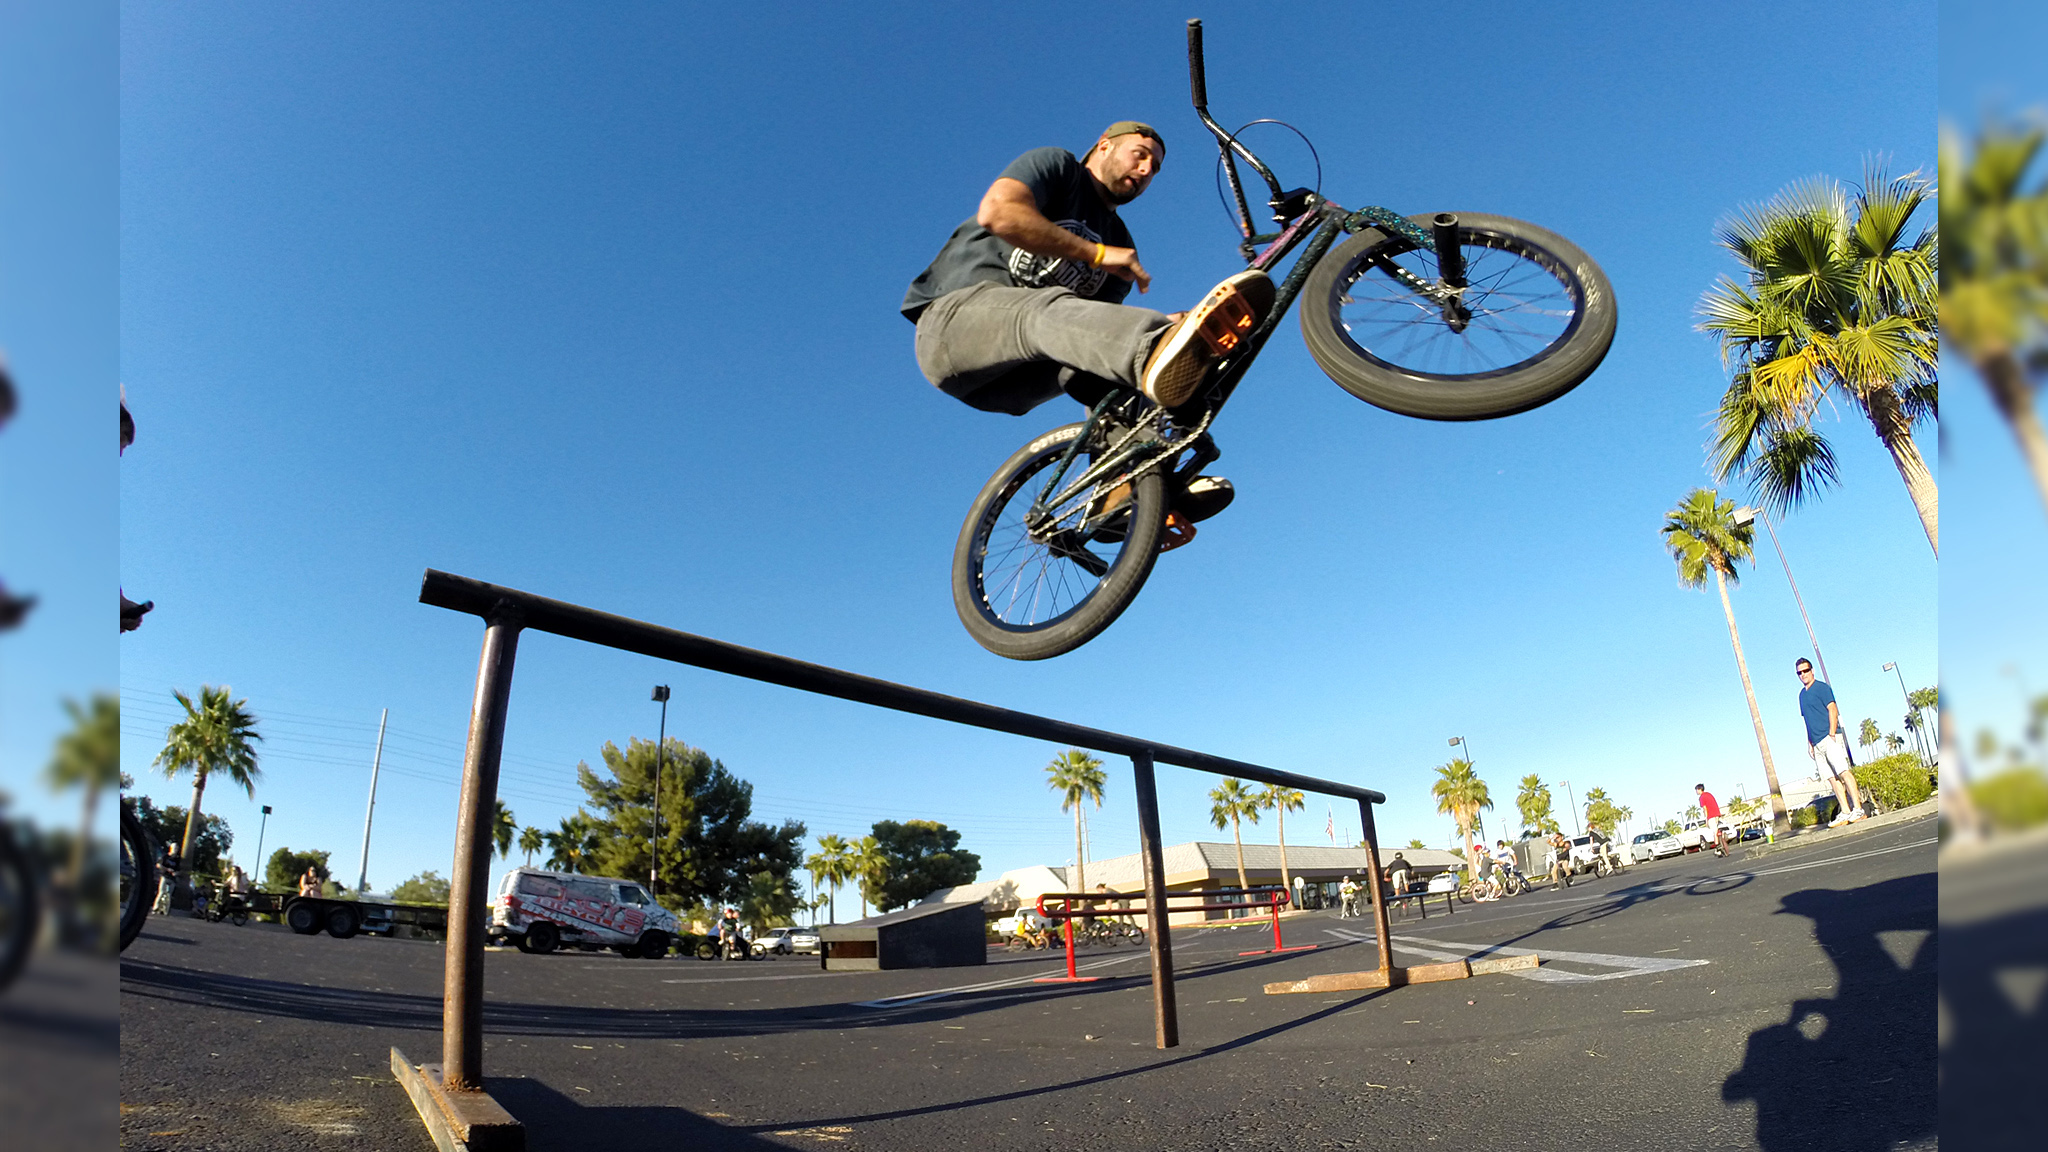 Aaron Ross, barspin